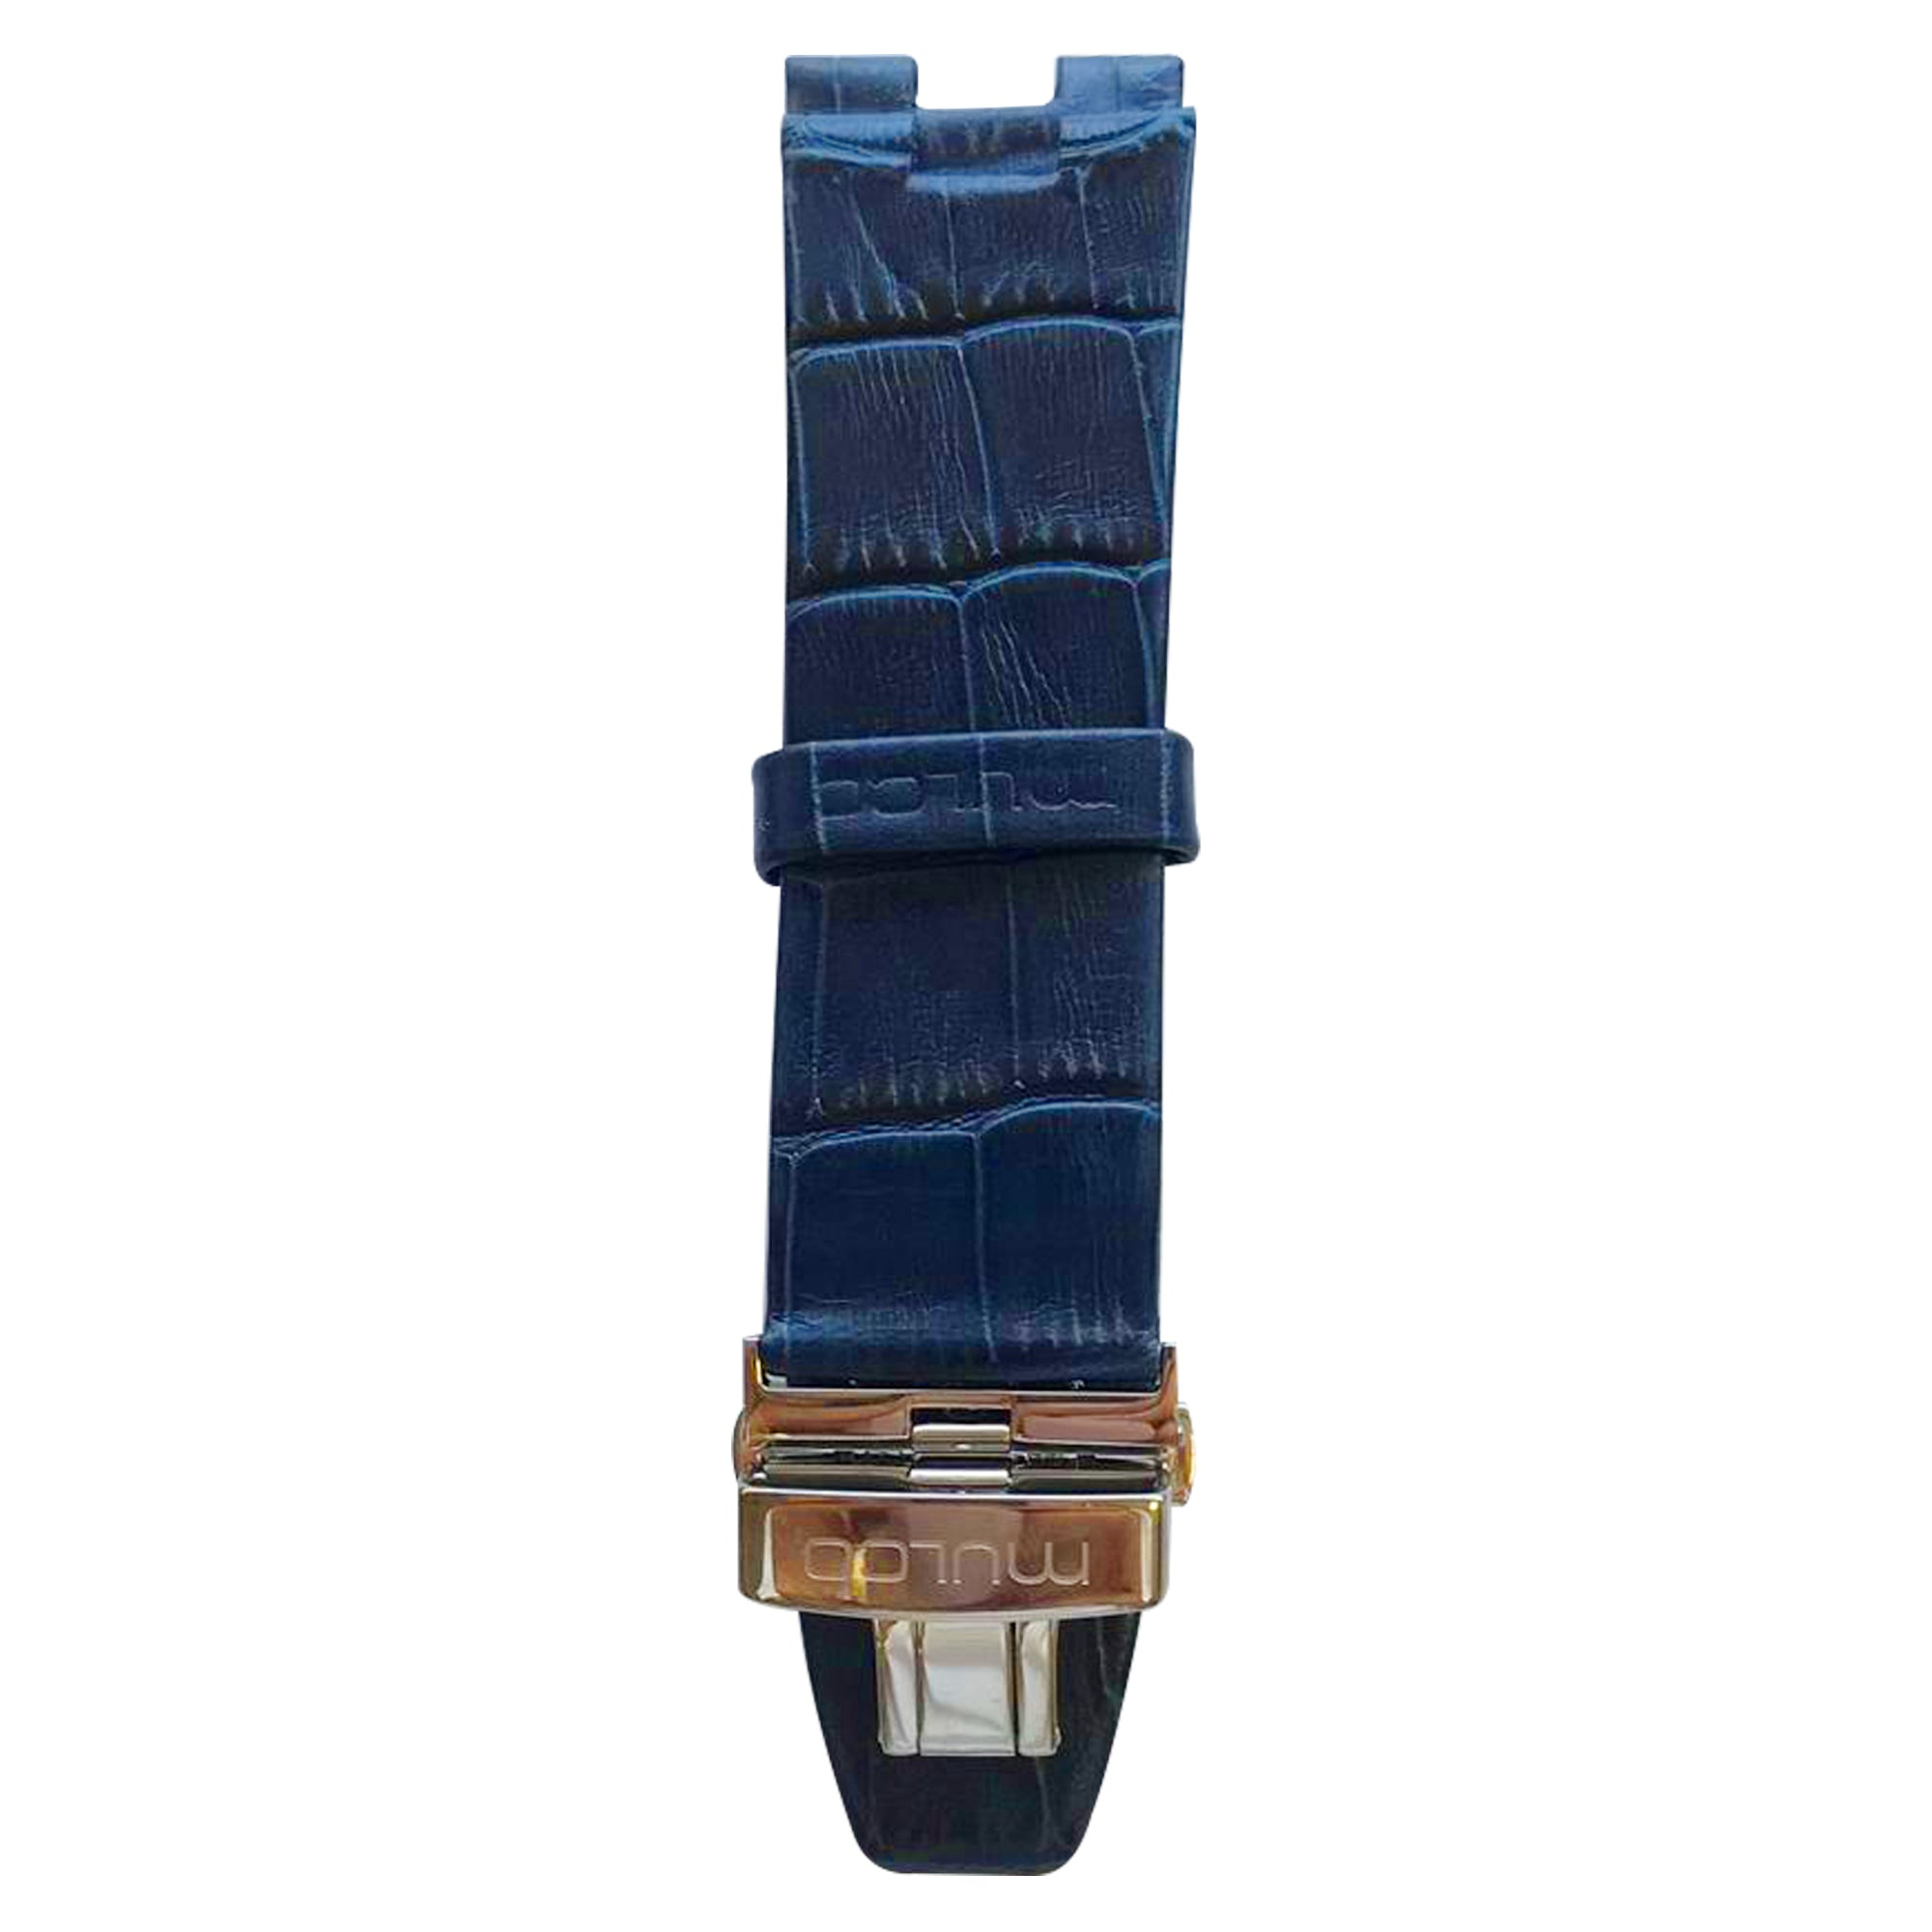 Strap-2602-043-Strap-Mulco-Watches